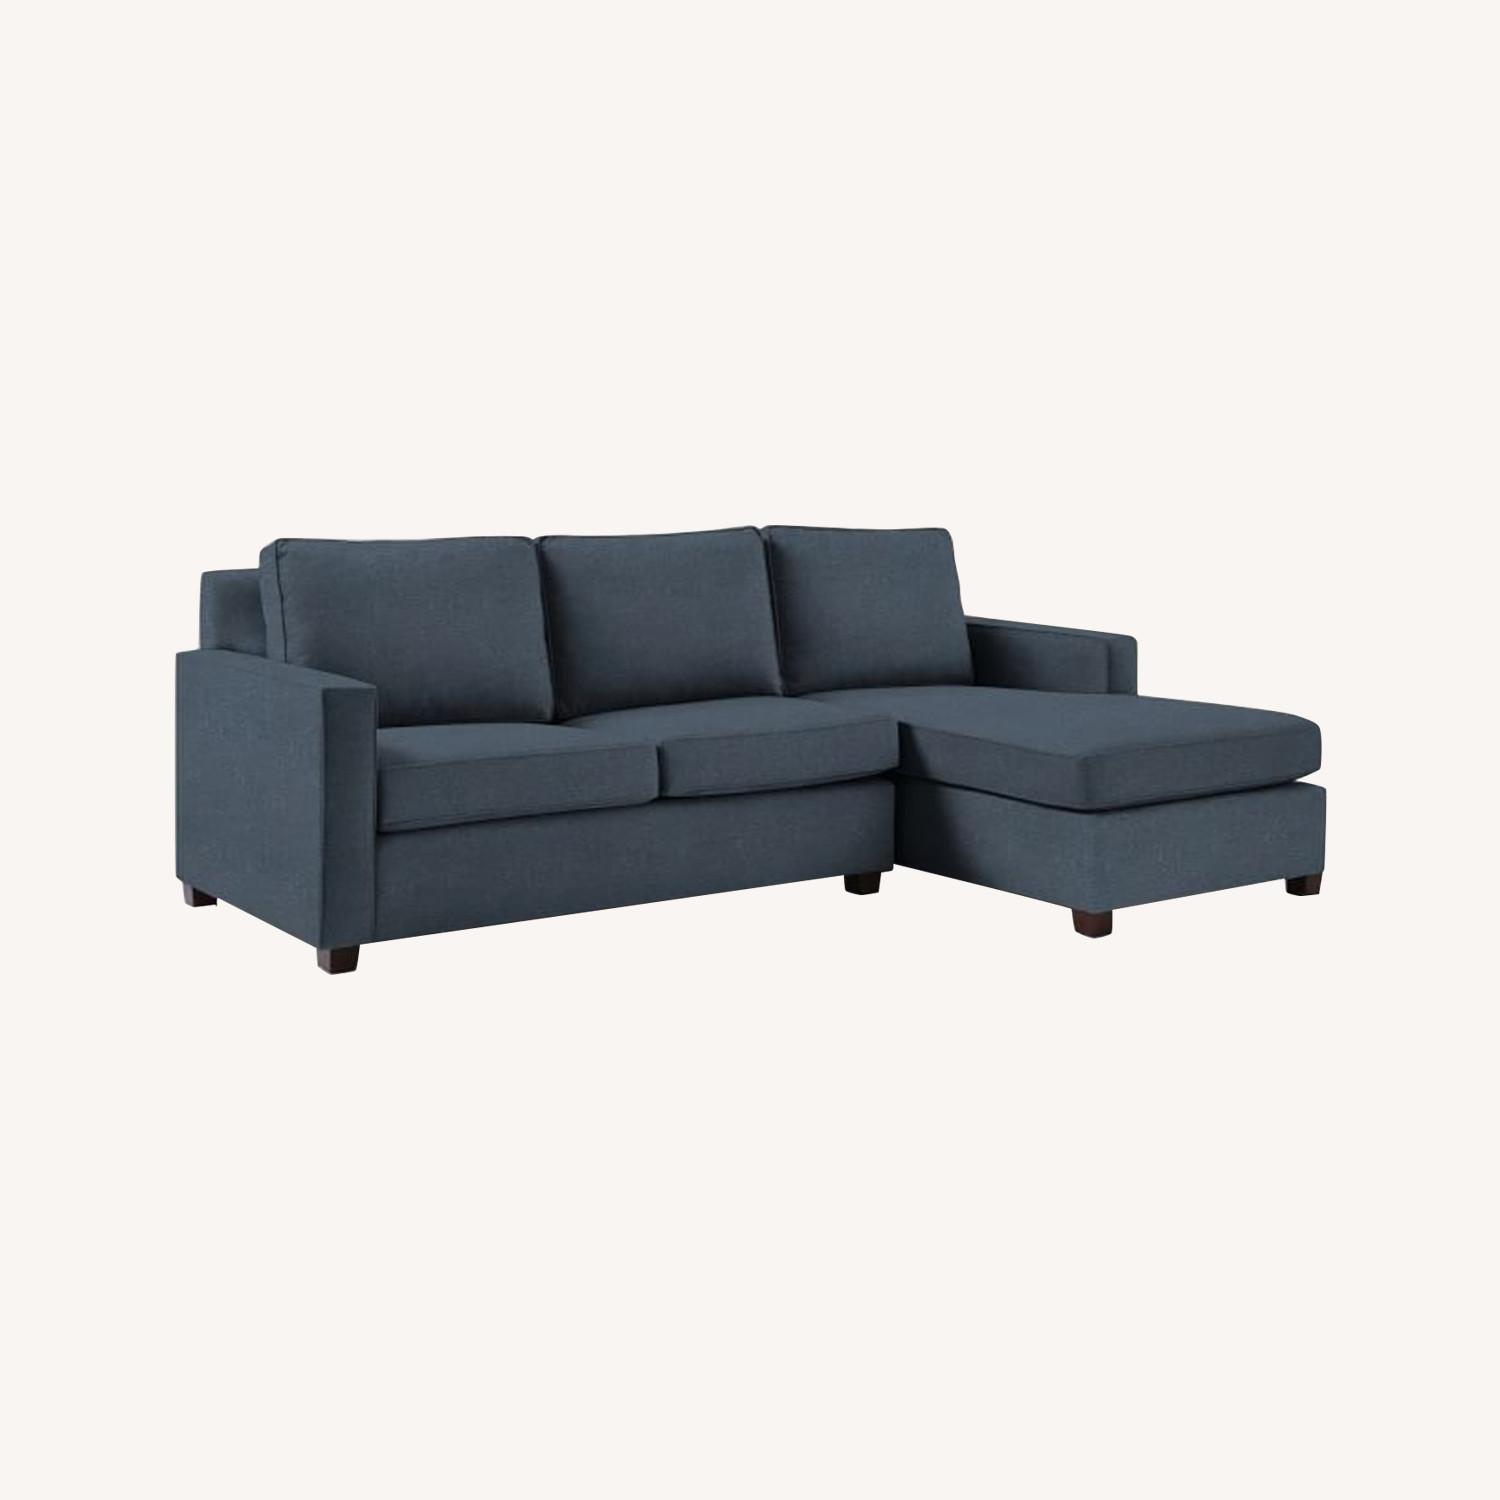 West Elm Henry L-Shaped Sofa in Blue Twill - image-0